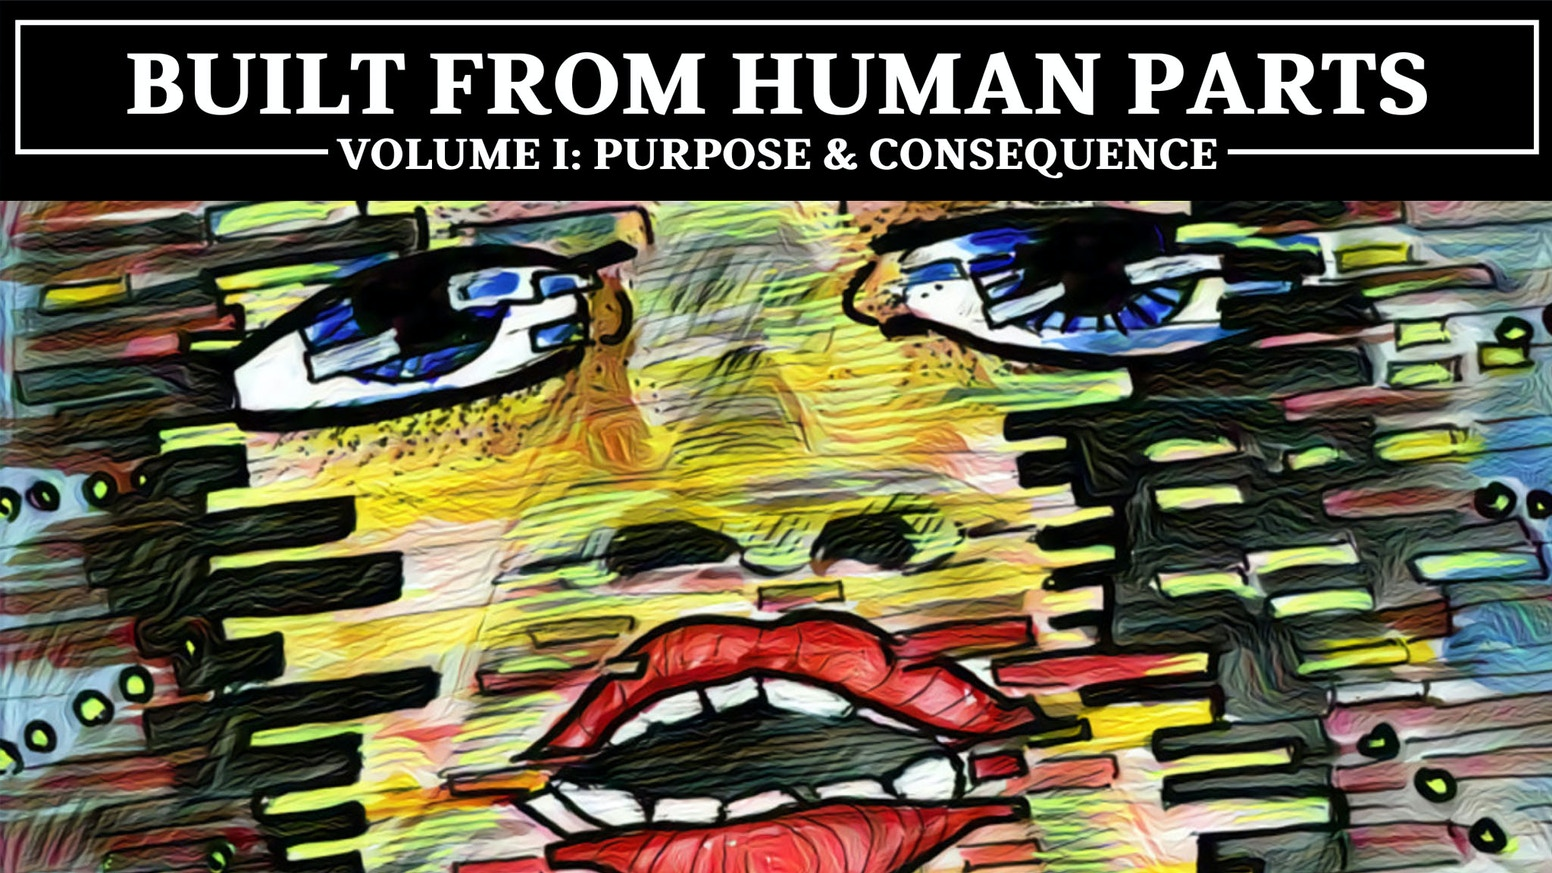 BUILT FROM HUMAN PARTS is a comic/prose/audio anthology   about finding purpose, fearing the future, and handling consequence.